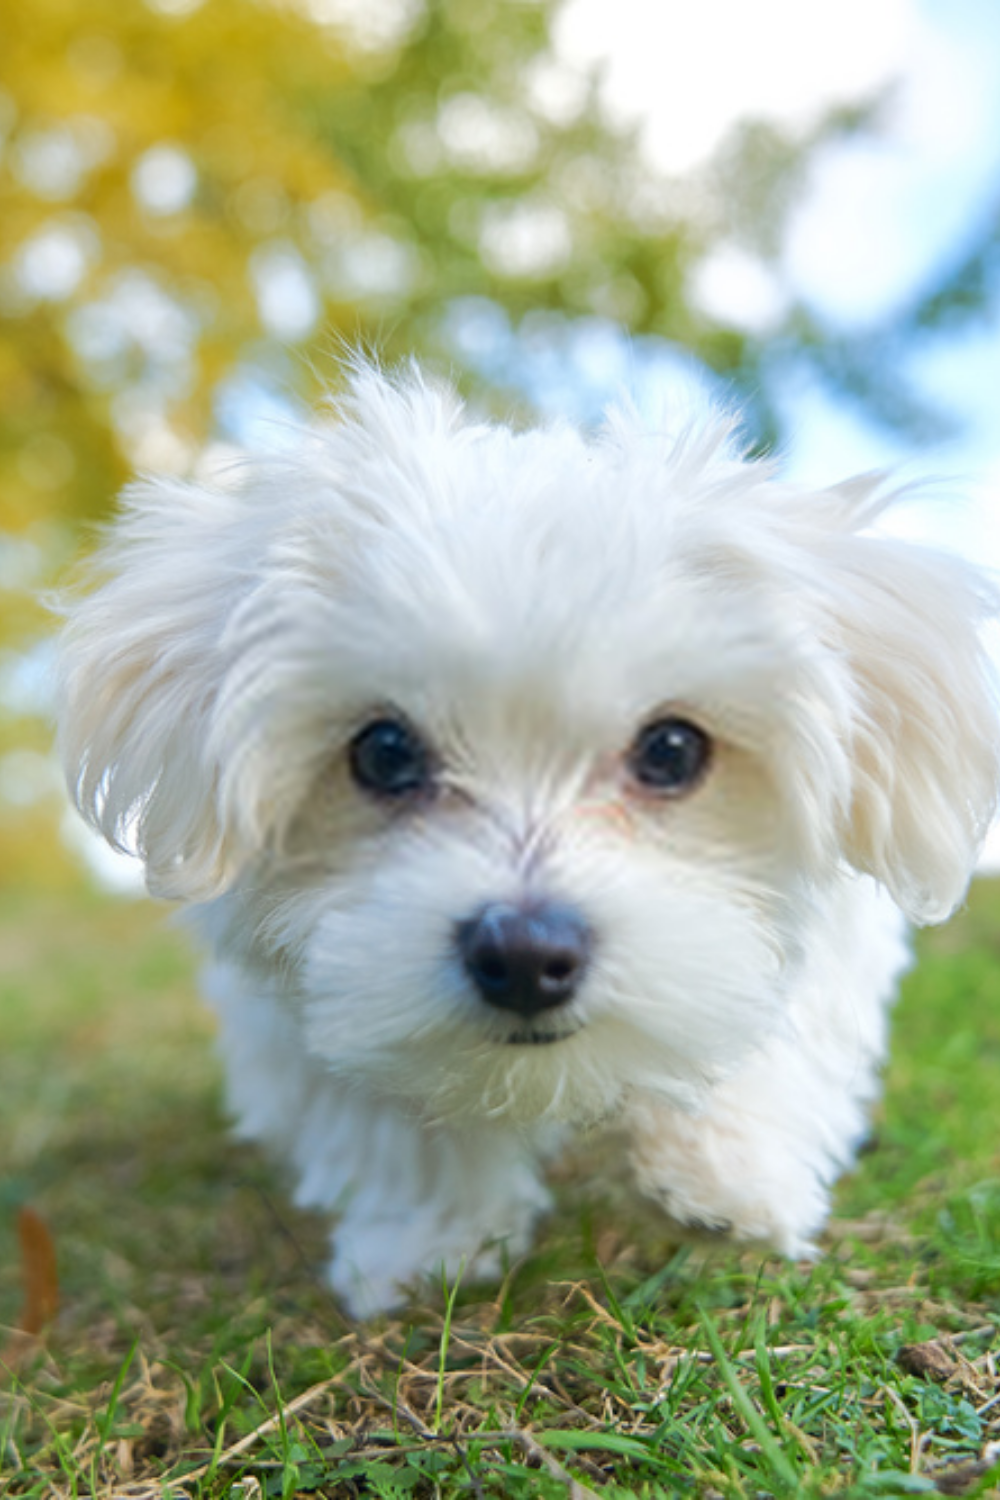 White Maltese Puppy Puppy Maltese The Maltese Is One Of The Oldest And Most Adorable Of The Toy Breeds In 2020 Maltese Puppy Teacup Puppies Maltese Puppies